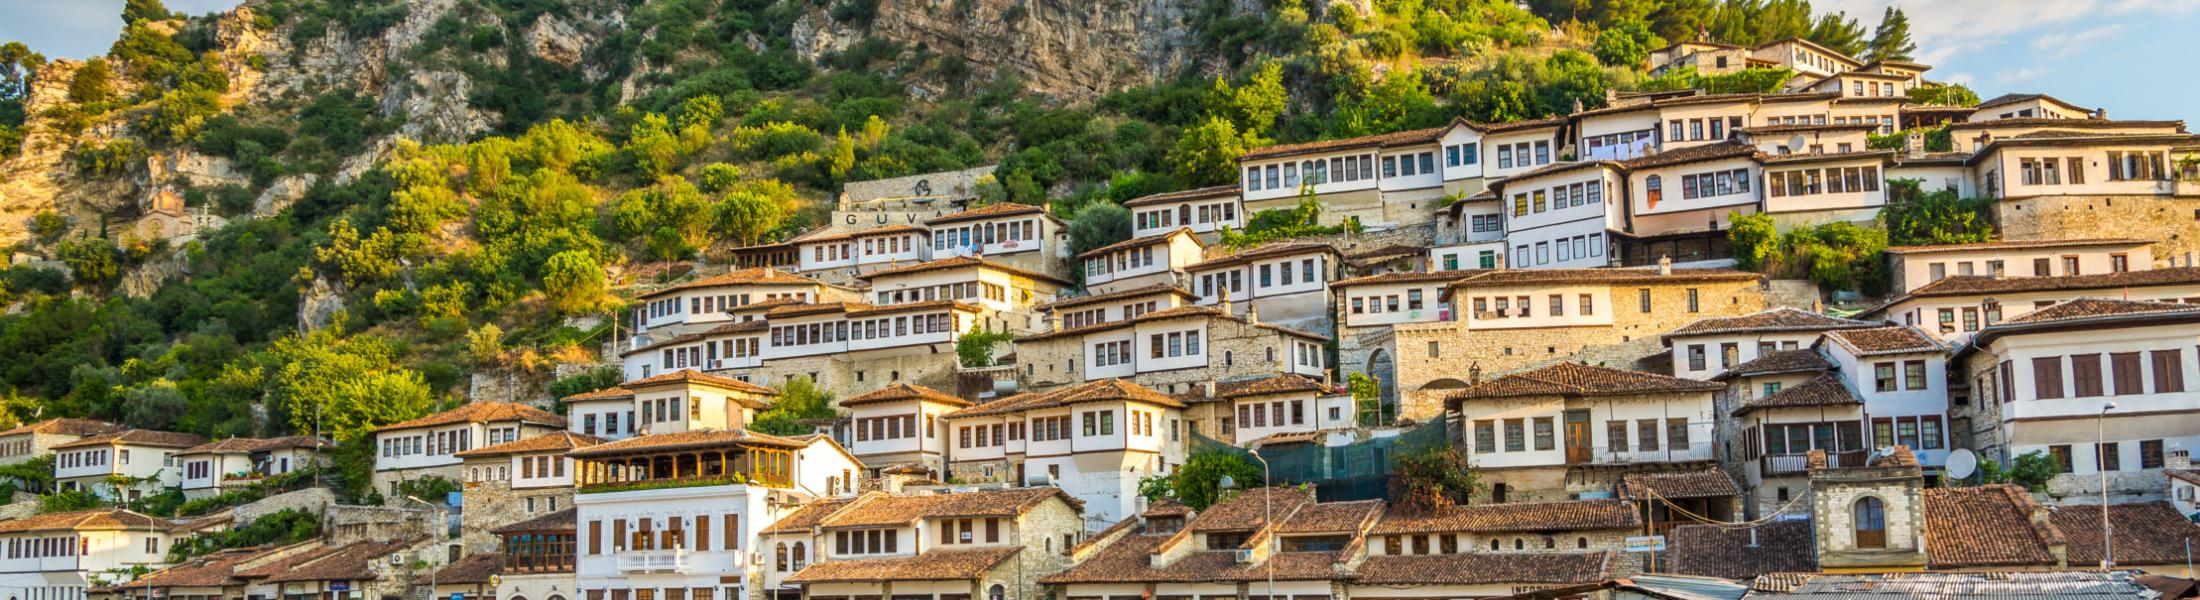 A hillside village in Albania sits next to a riverside, with a rocky hill looming over it in the background.